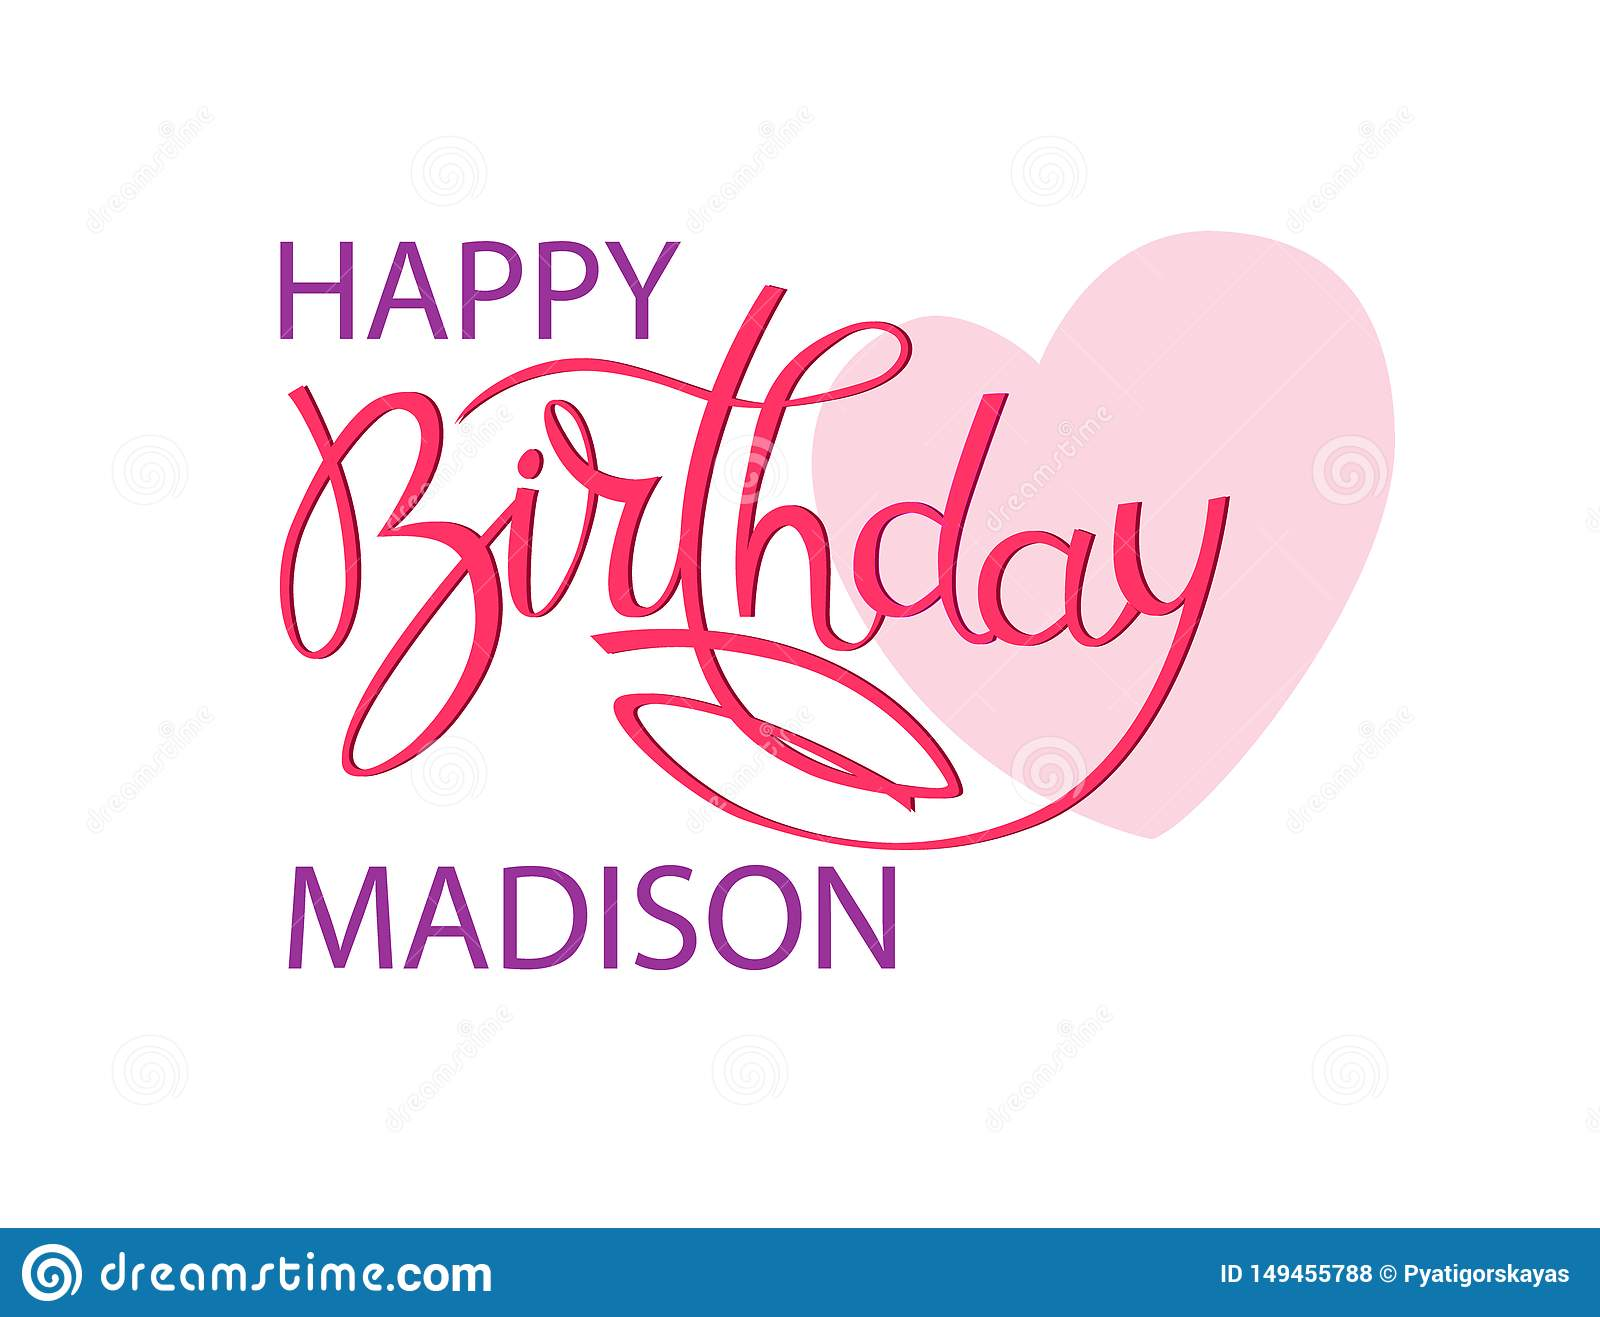 Madison/'s Collection Birthday Card